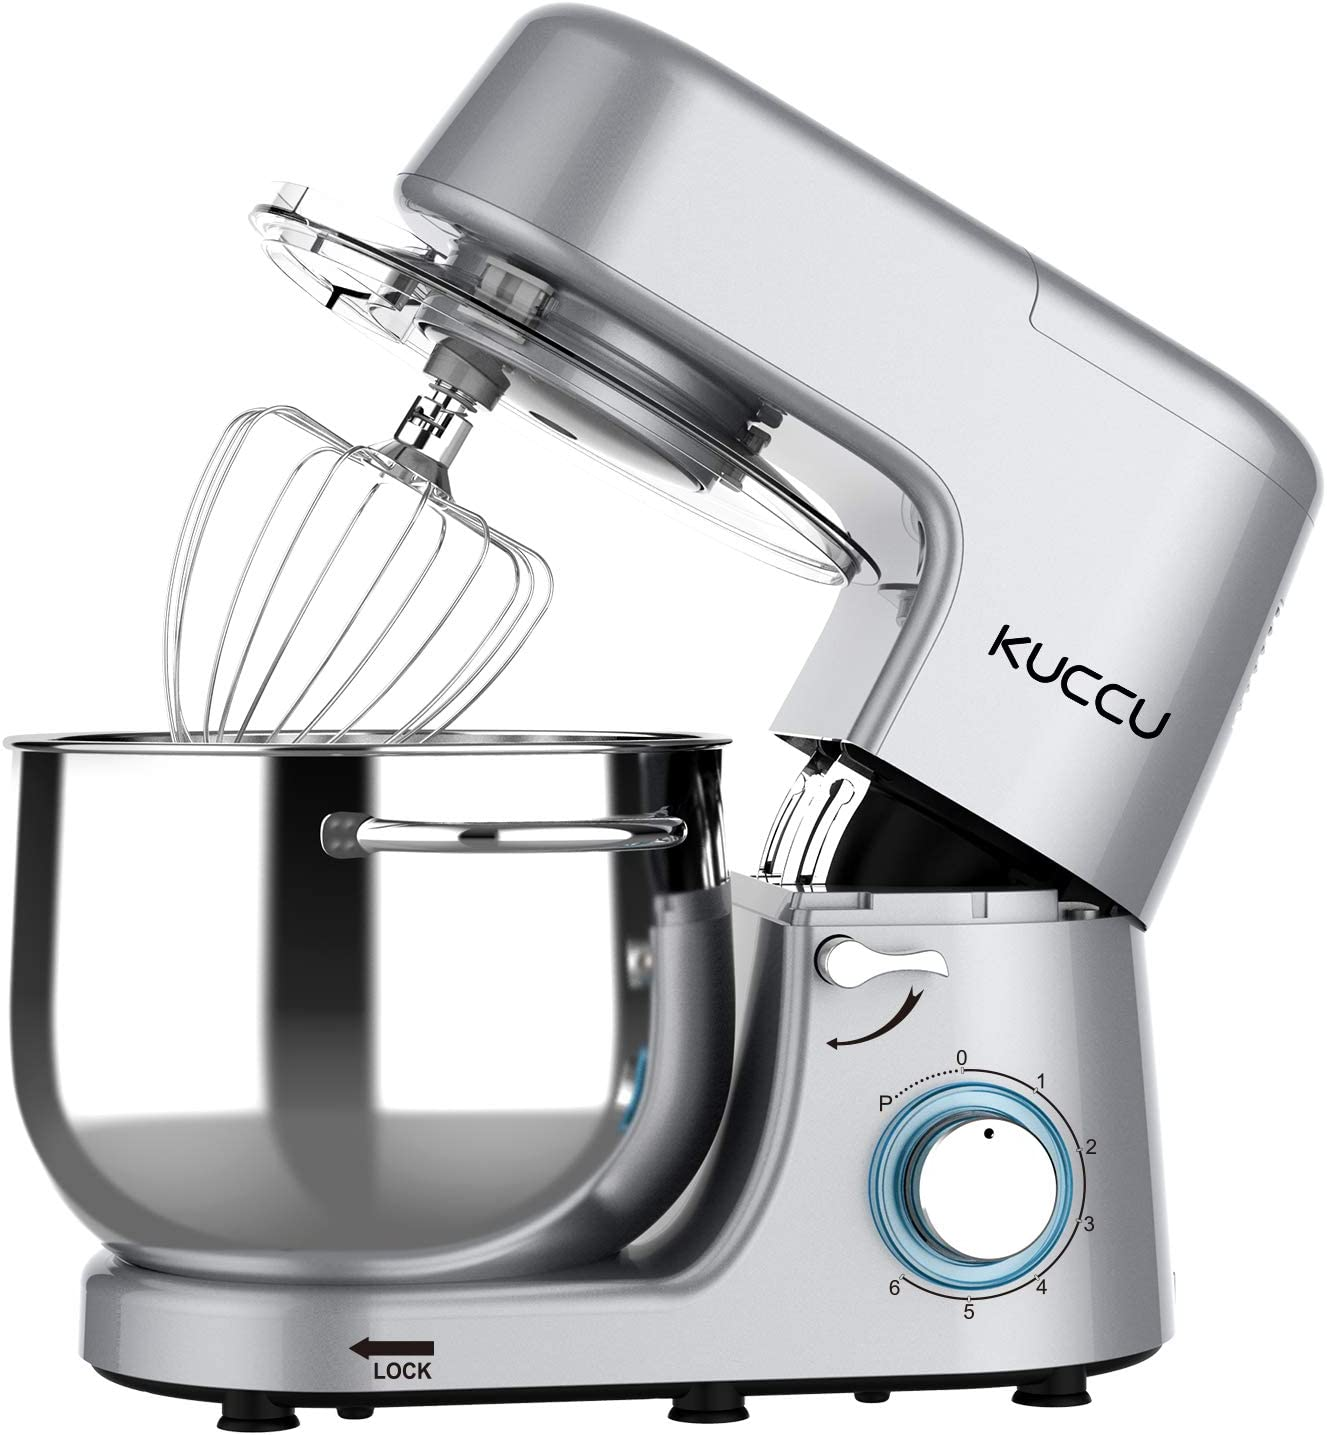 Stand Mixer,Kuccu 660W 6 Speeds Tilt-Head Food Dough Mixer with 8 Qt Stainless Steel Bowl, Electric Kitchen Mixer with Dough Hook and Flat Beater, Wire Whisk (8-QT, Silver)